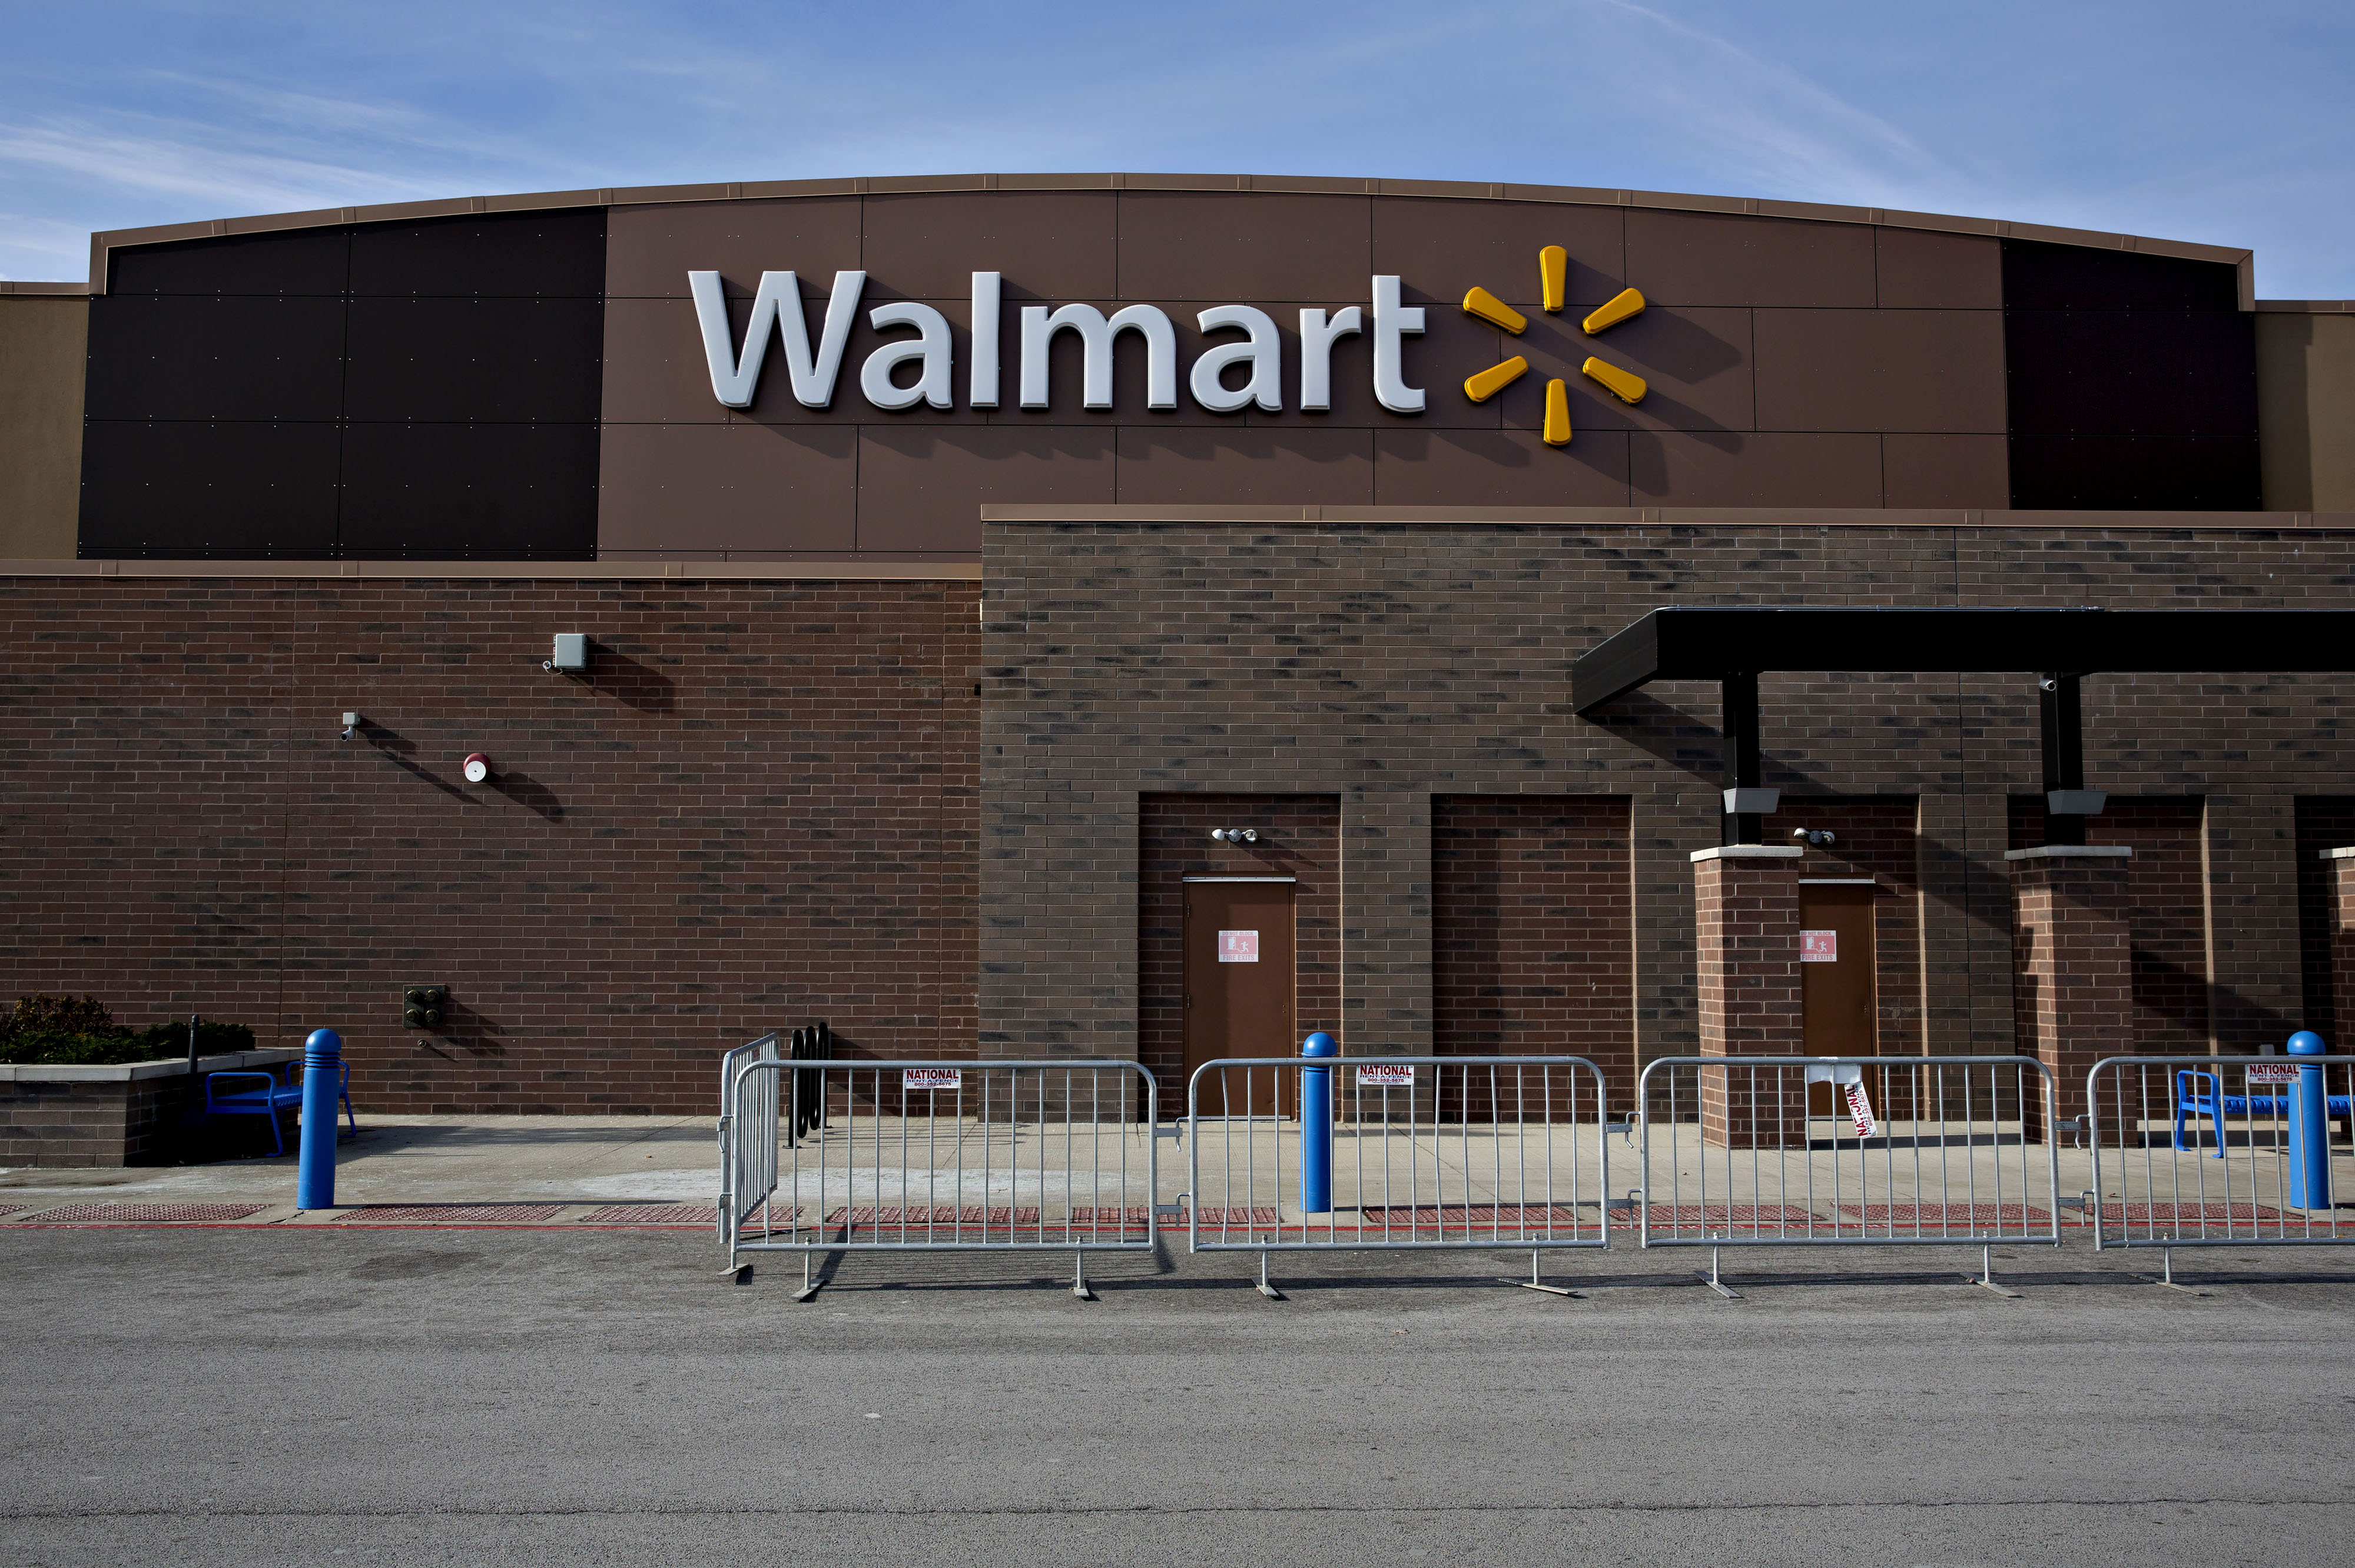 Temporary security fencing sits outside a Wal-Mart Stores Inc. location in Chicago, Illinois, U.S., on Wednesday, Nov. 25, 2015.